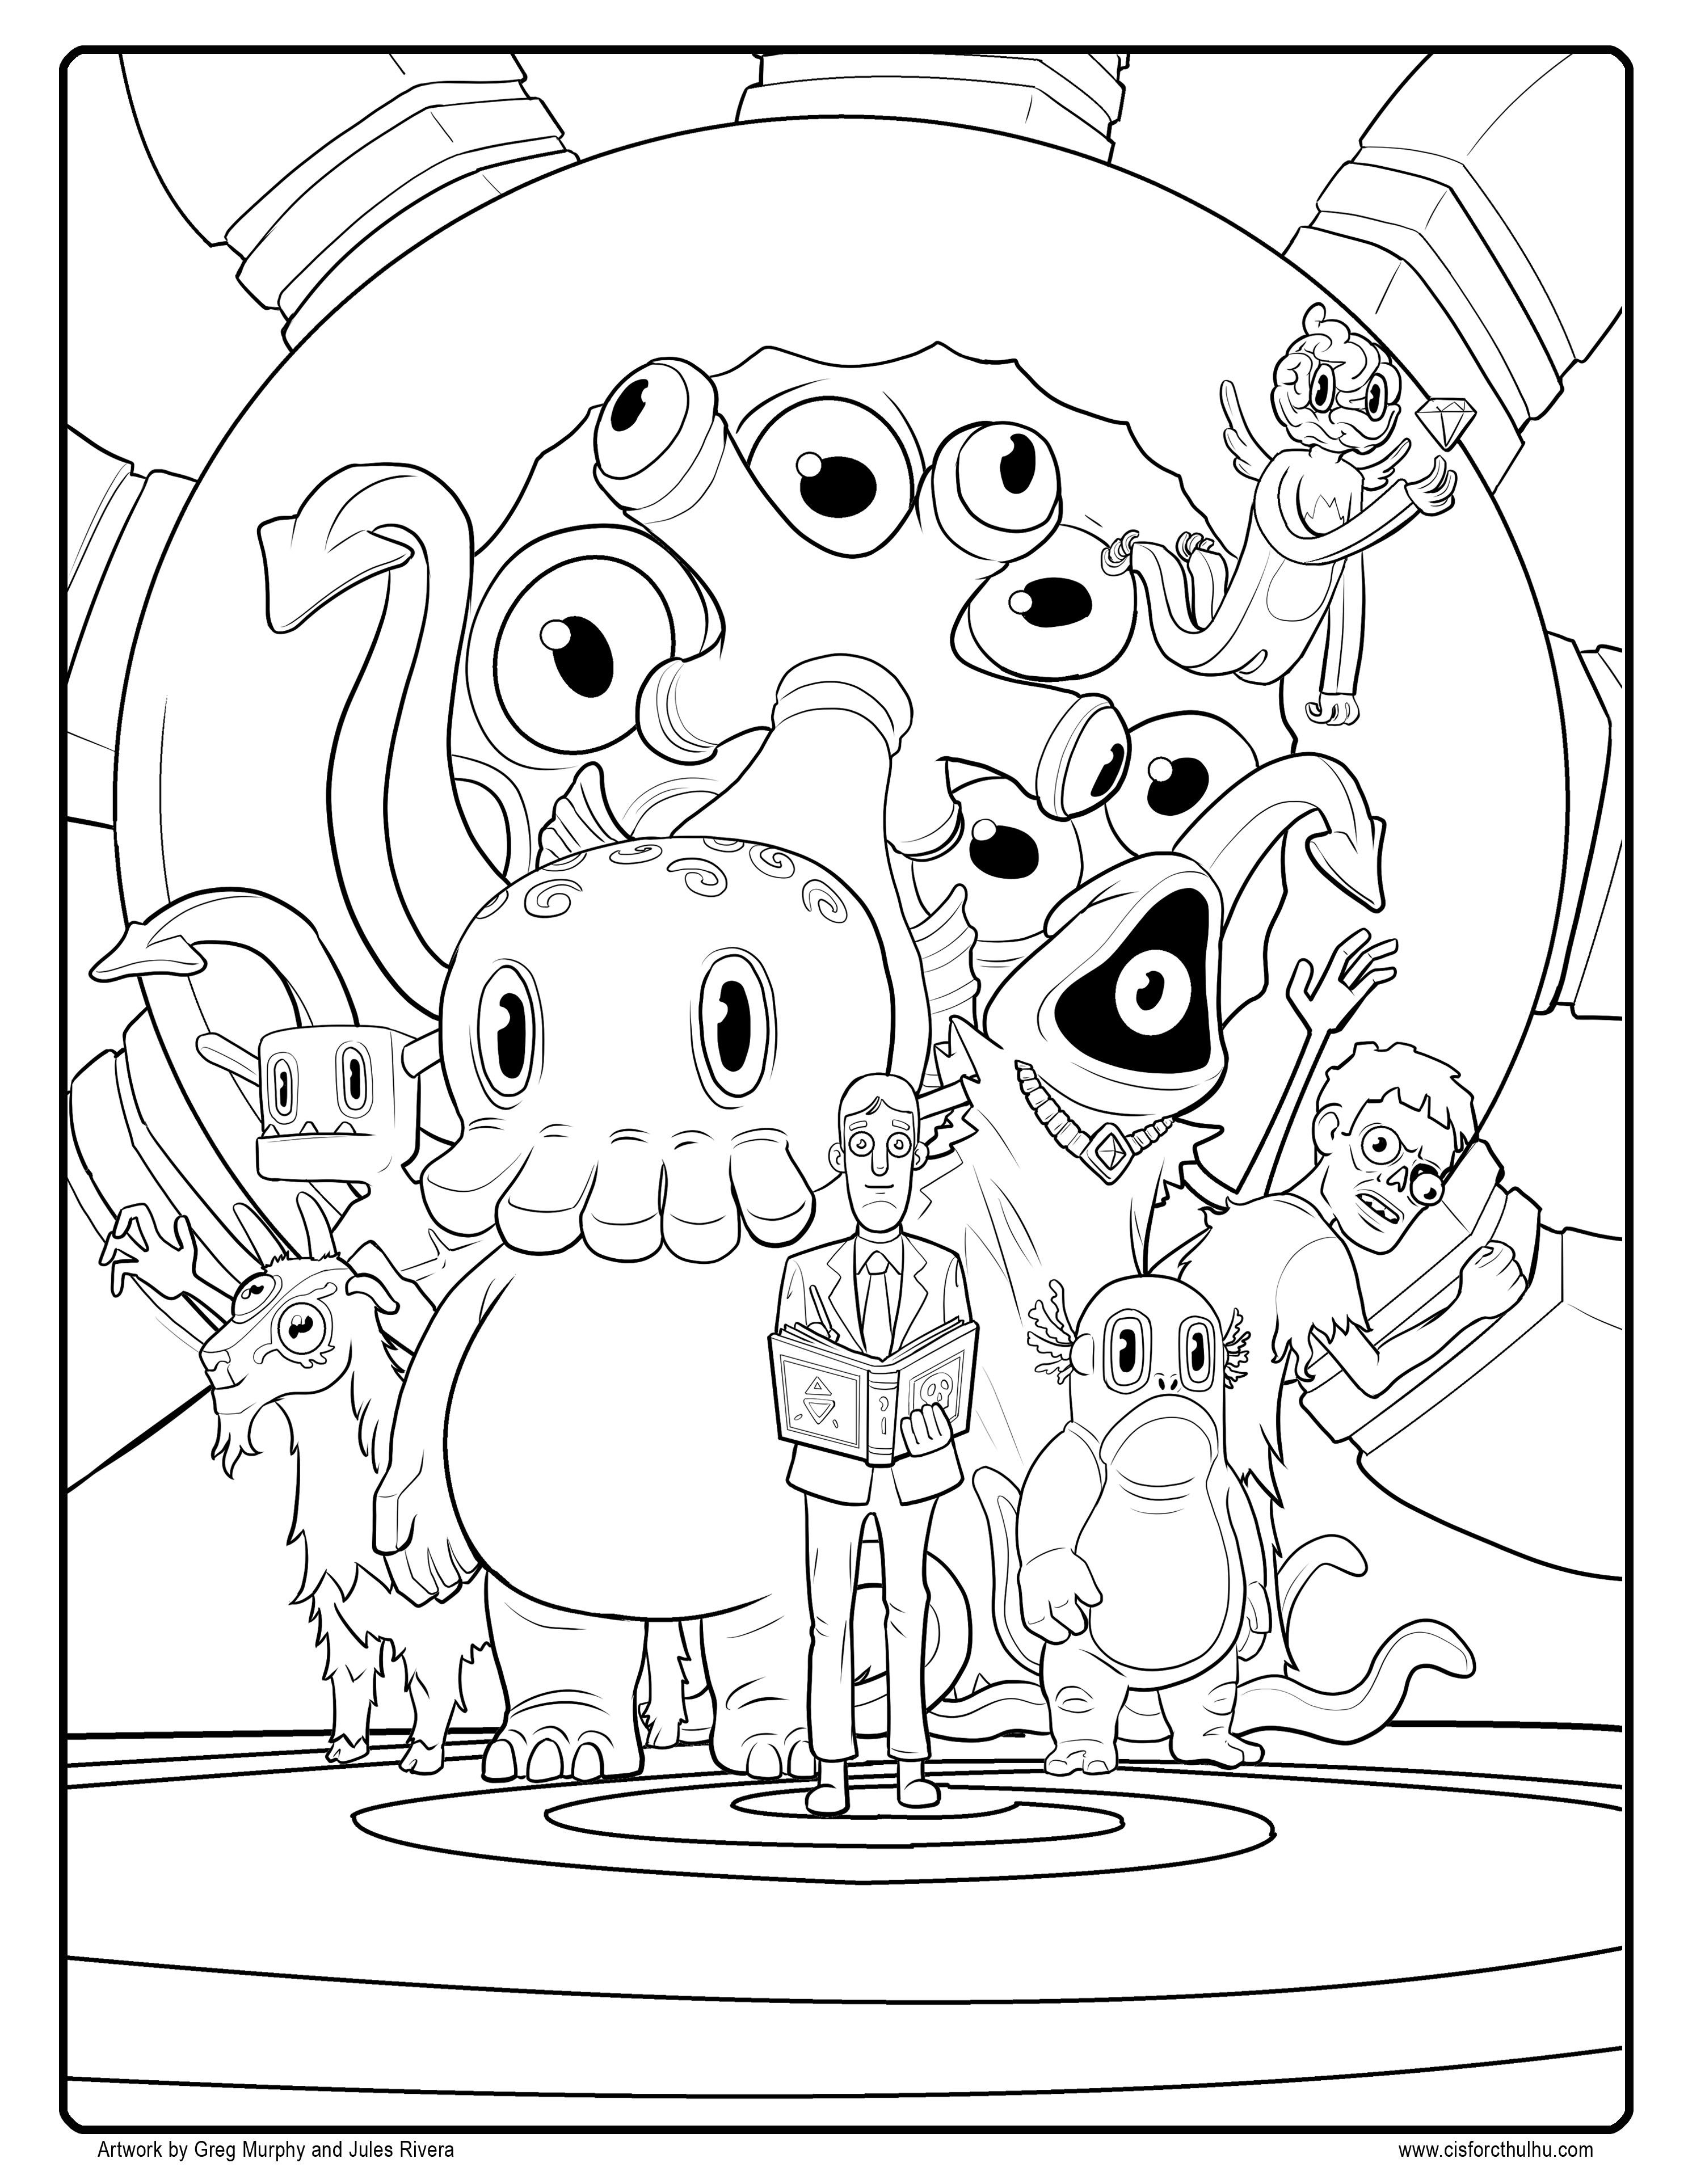 final fantasy coloring pages Collection-Free C is for Cthulhu Coloring Sheet 3-a